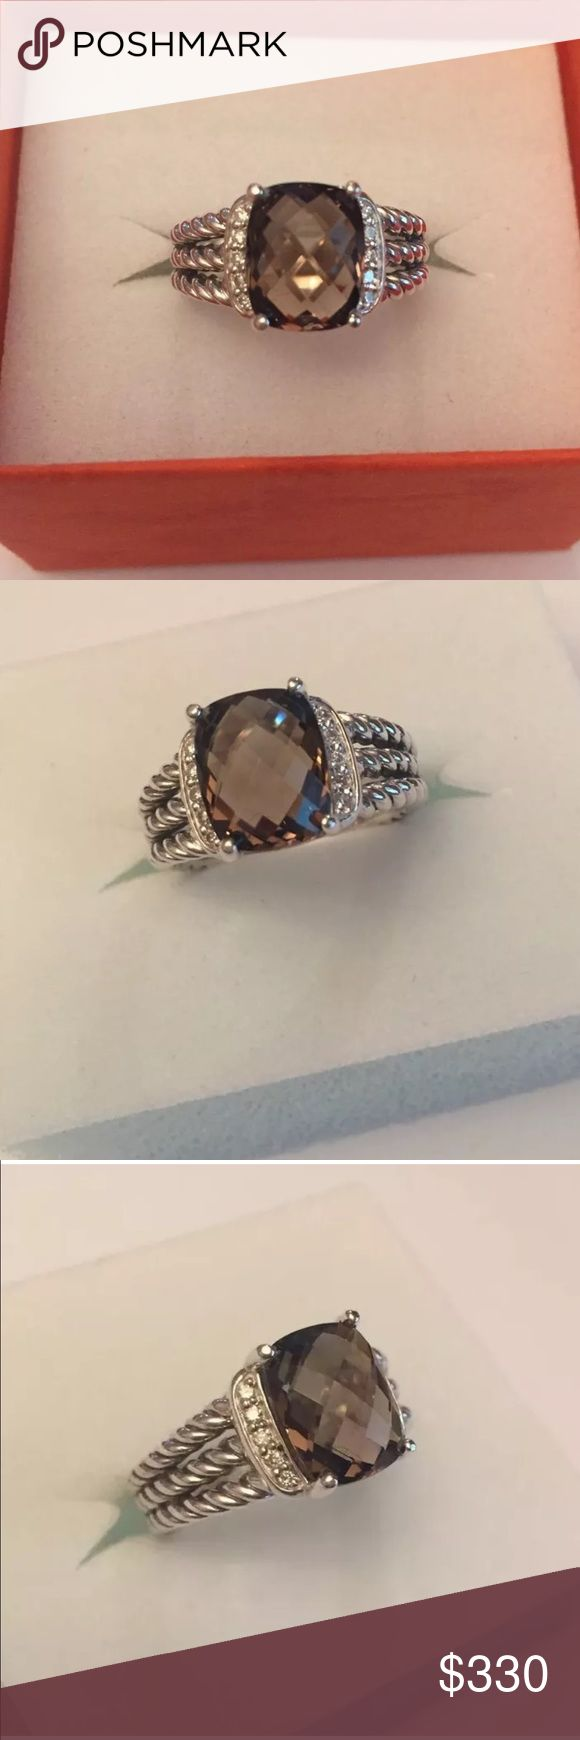 DAVID YURMAN PETITE WHEATON RING W SMOCKEY Quartz DAVID YURMAN PETITE WHEATON RING WITH Smockey Quartz 10x8mm size 51/2 preowned gently used David Yurman Jewelry Rings